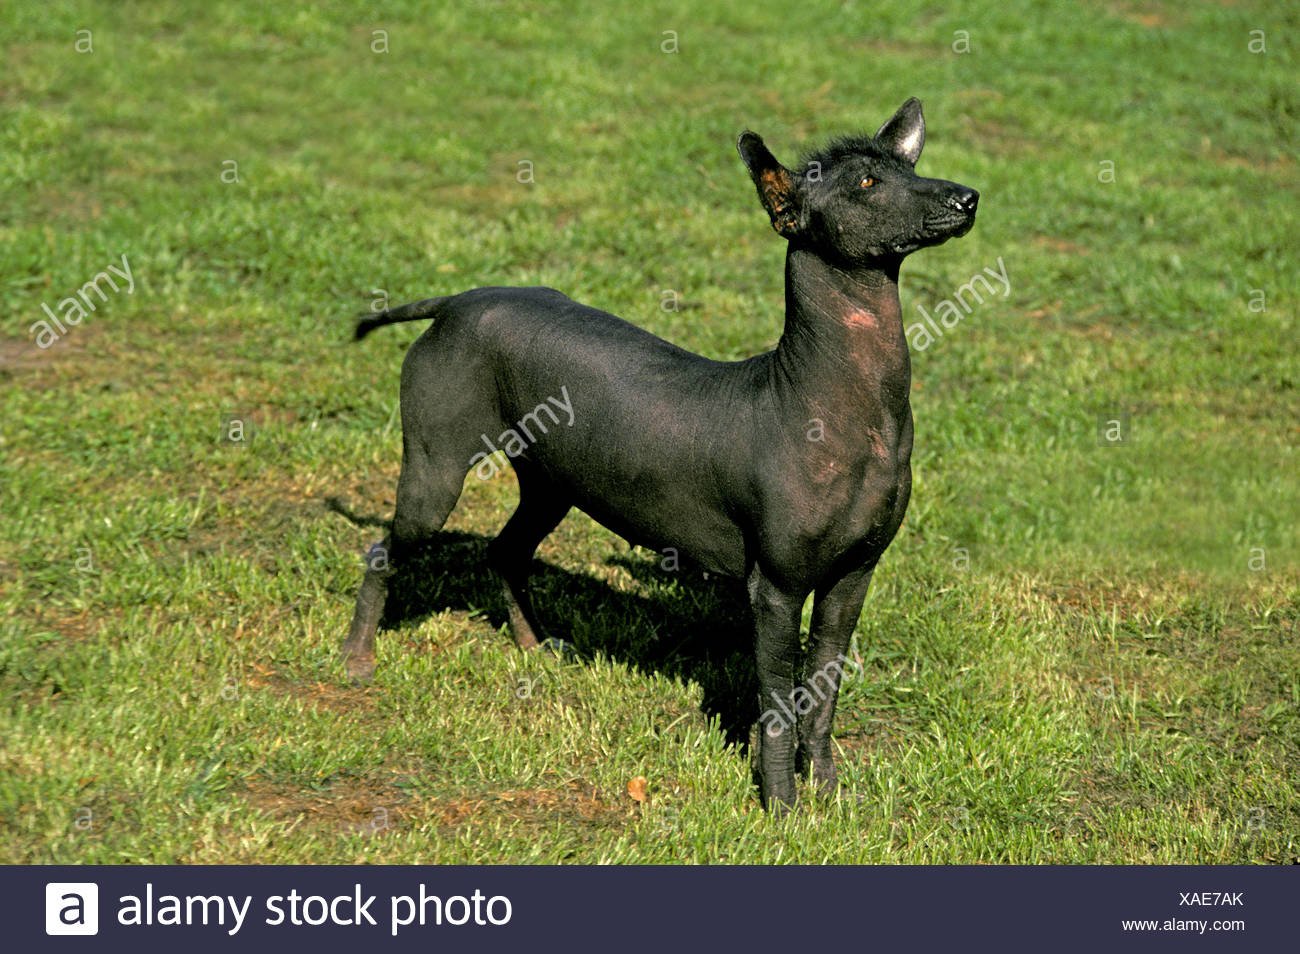 Mexican Hairless Dogs Stock Photos & Mexican Hairless Dogs